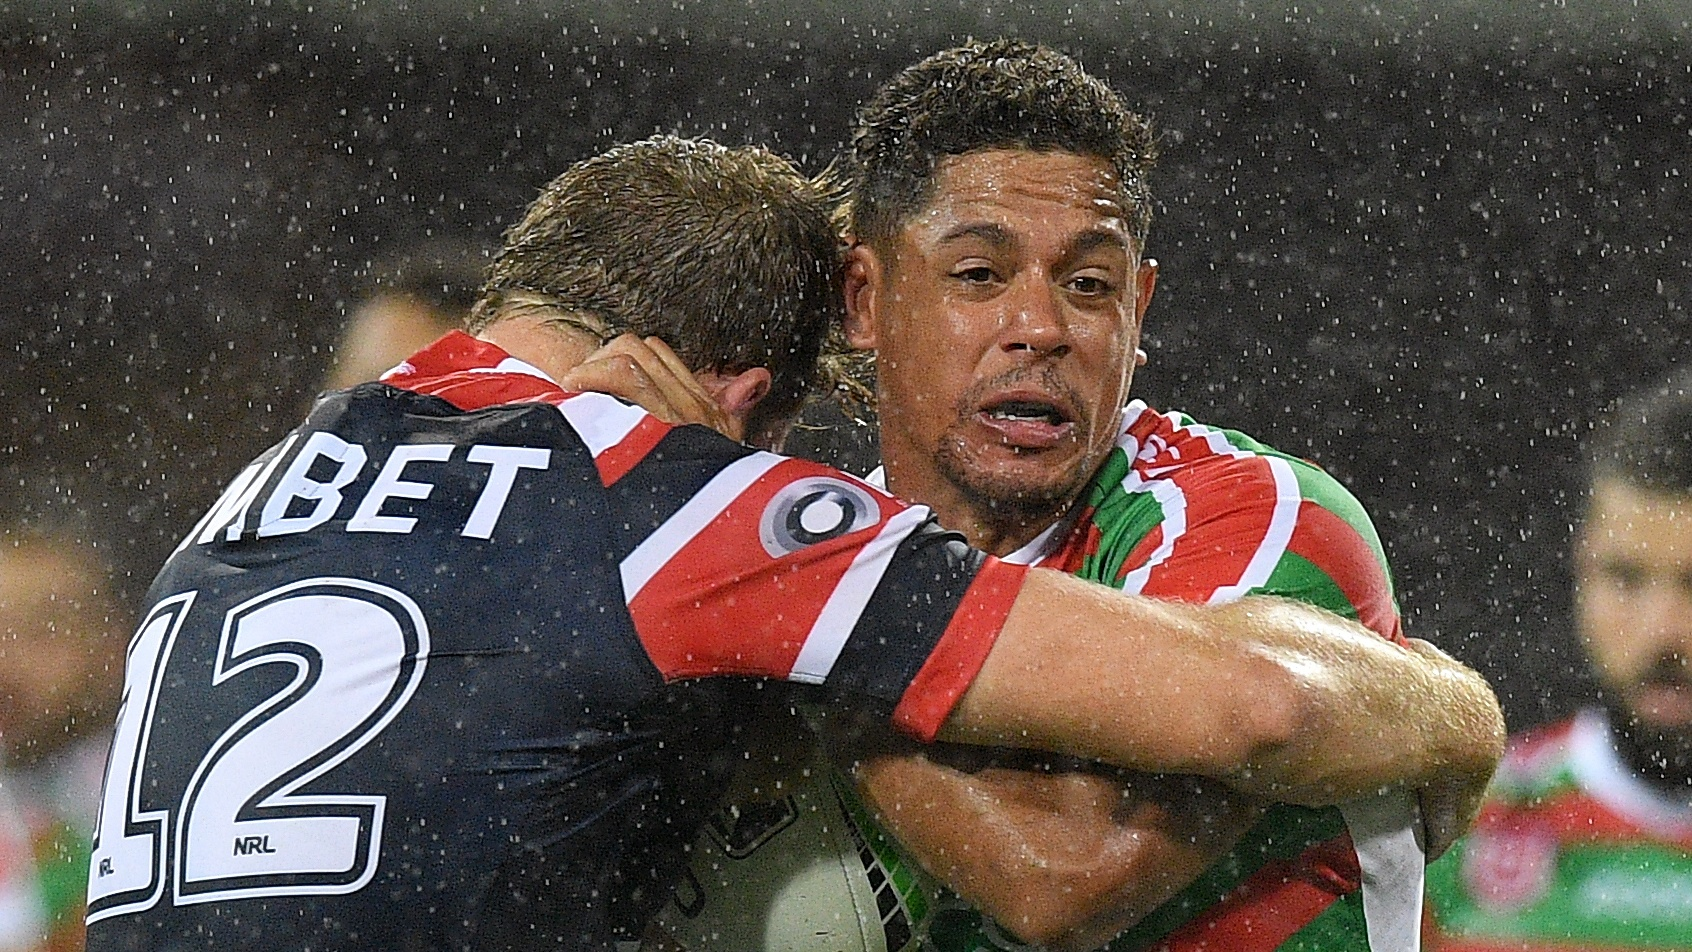 NRL Highlights: Roosters v Rabbitohs - Round 1